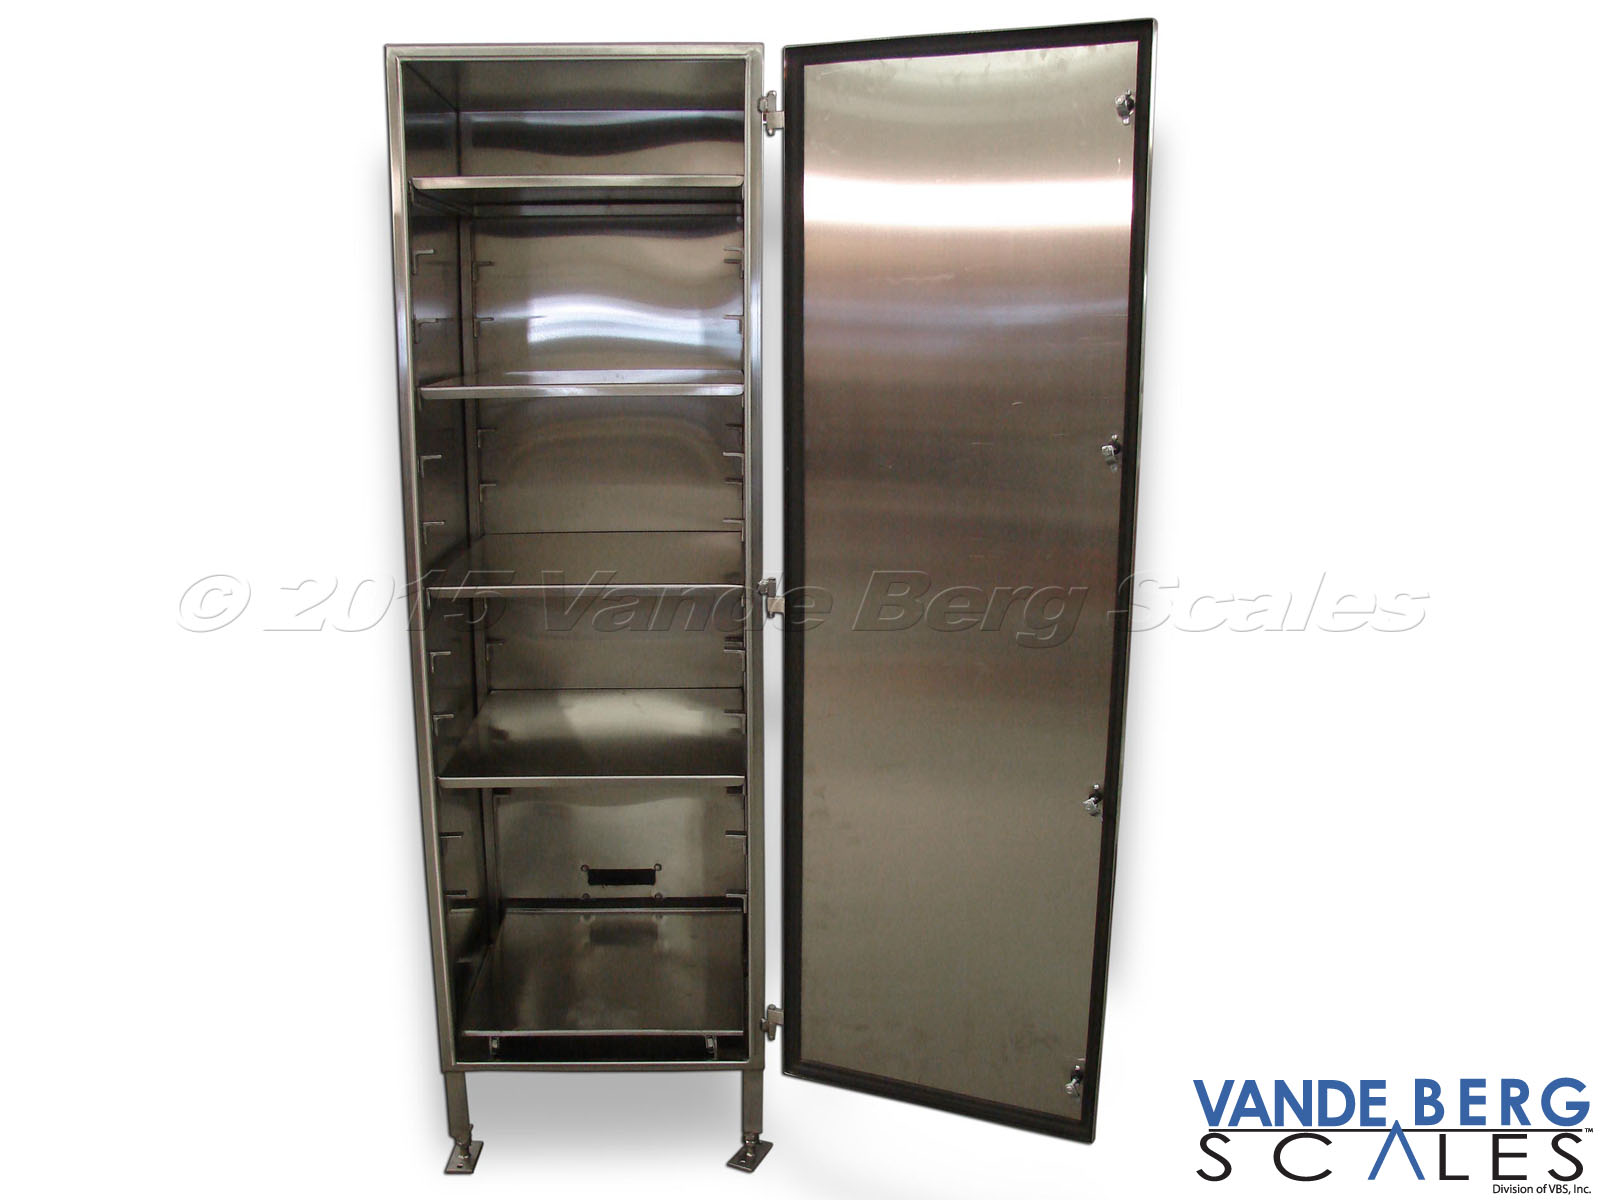 Tall washdown rated stainless steel cabinet with adjustable shelves and leveling feet.